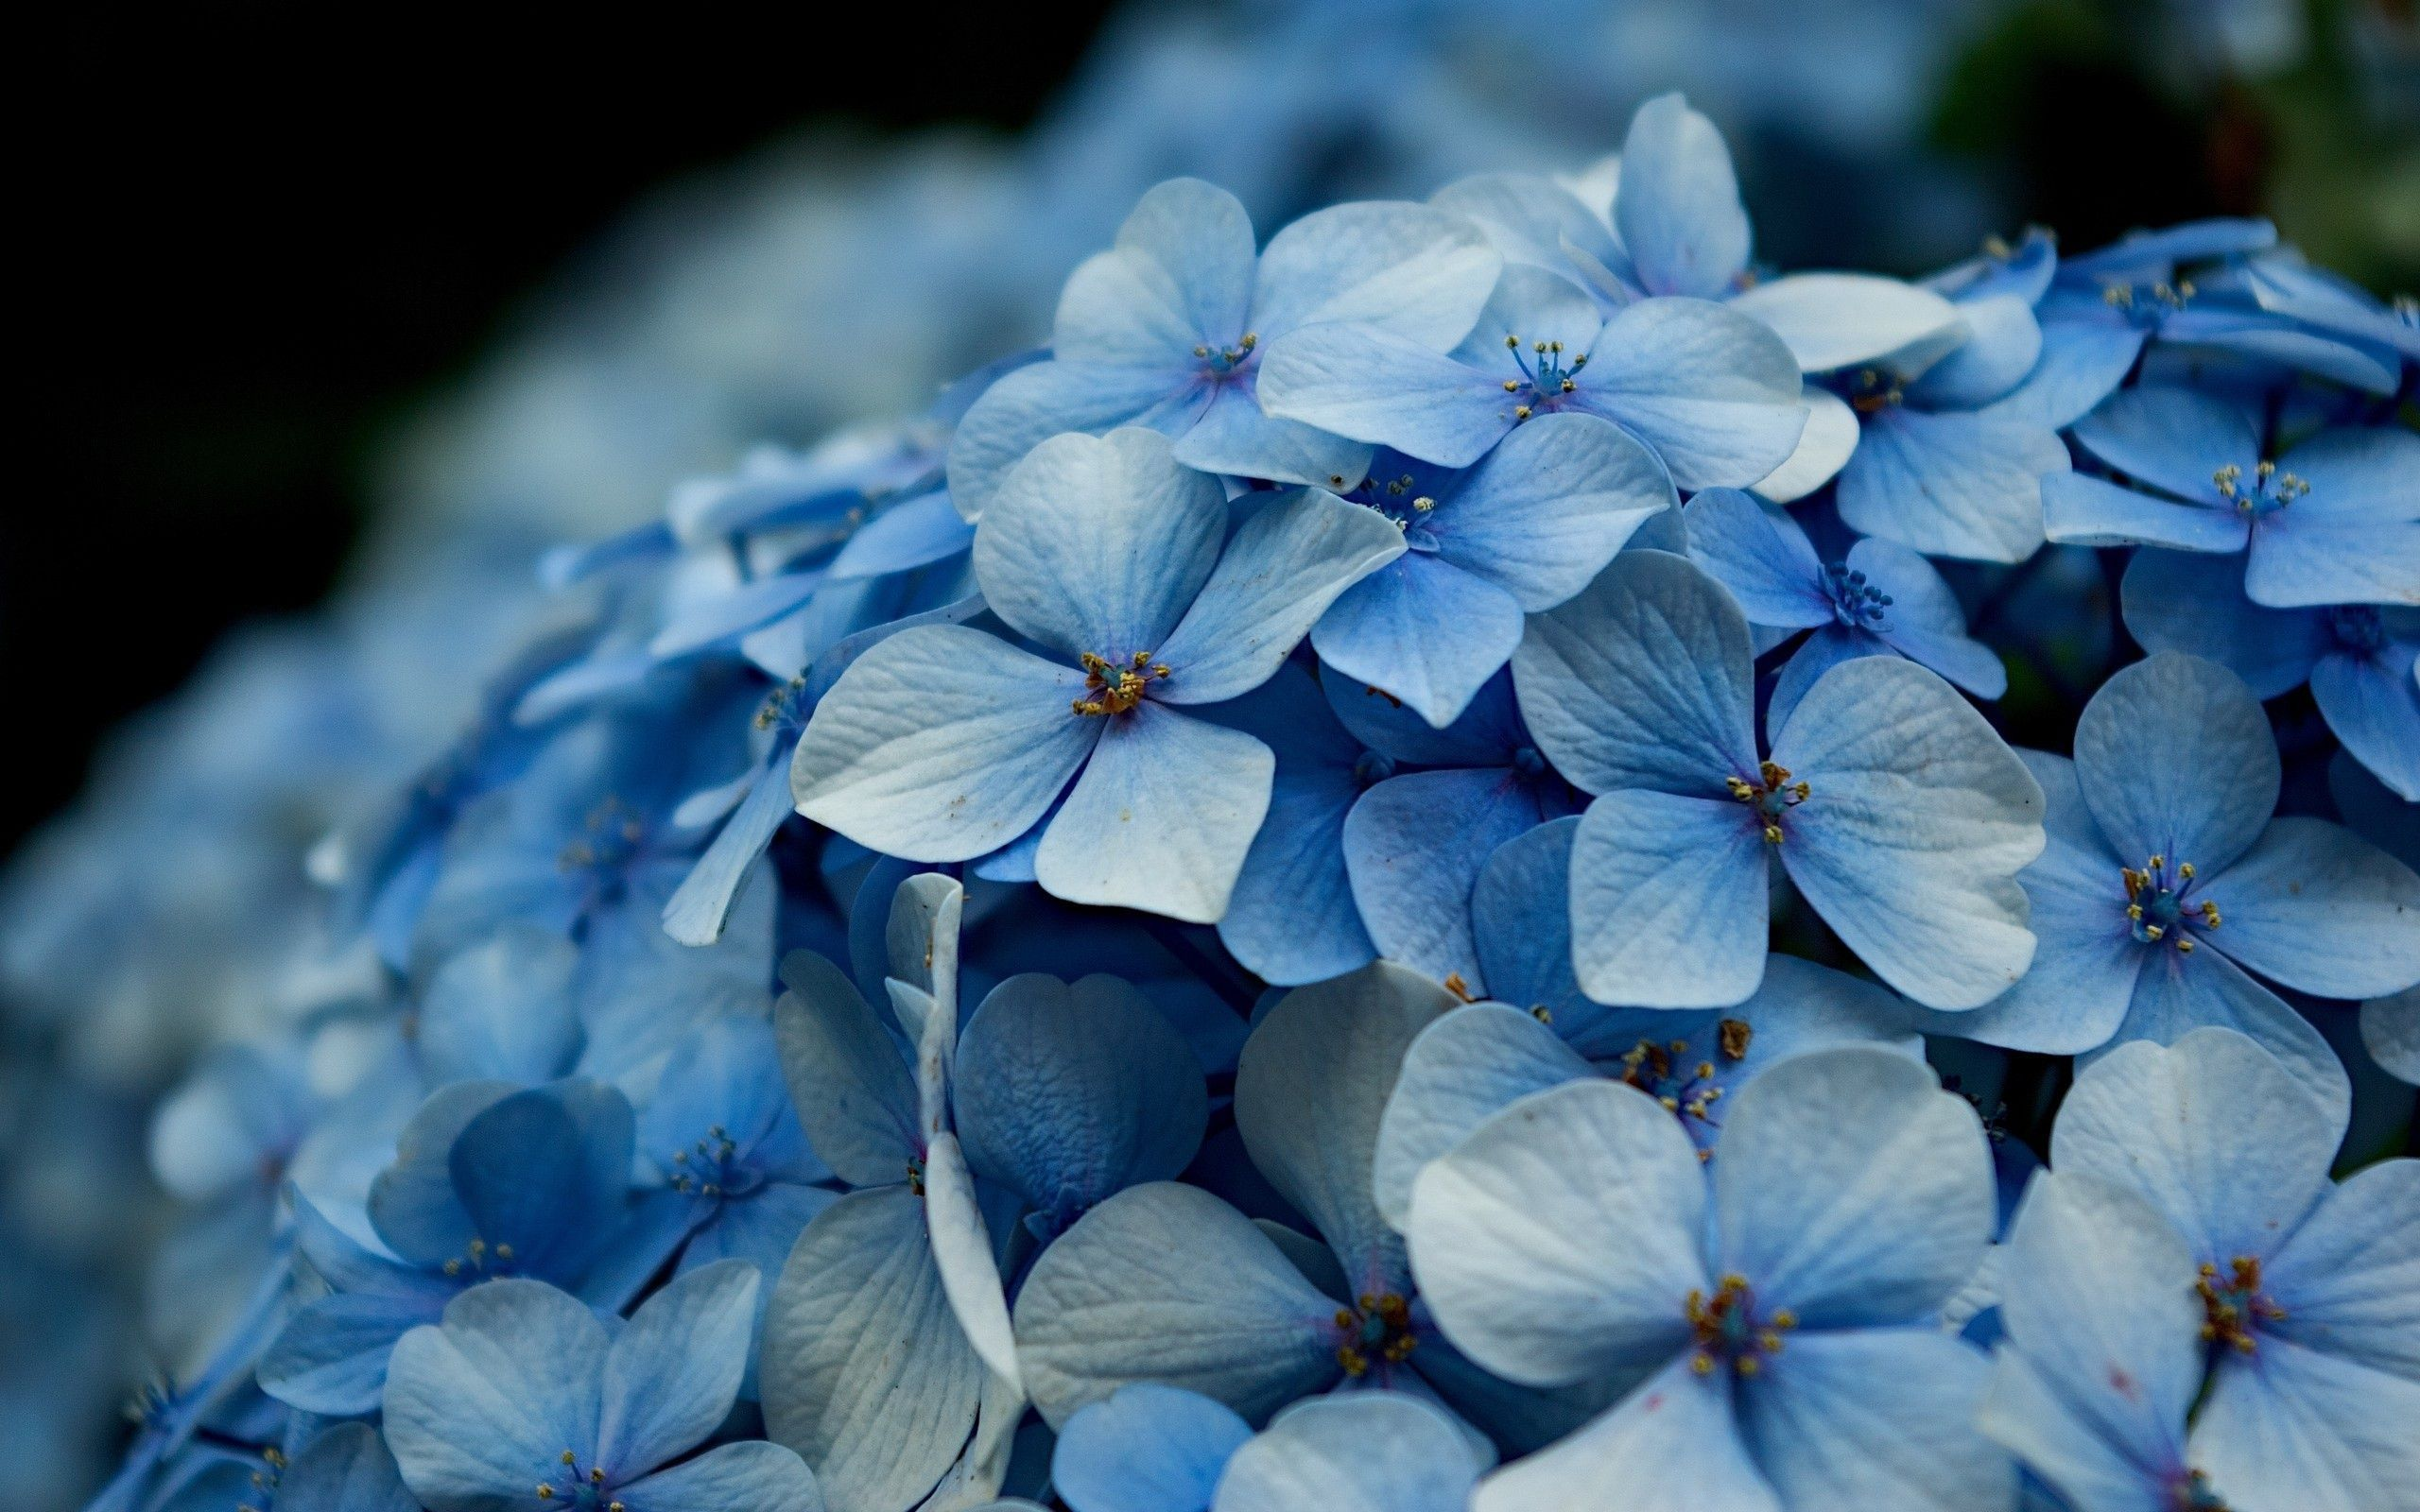 Hydrangea 22004 Nature Desktop Hd Iphone Ipad Wallpapers